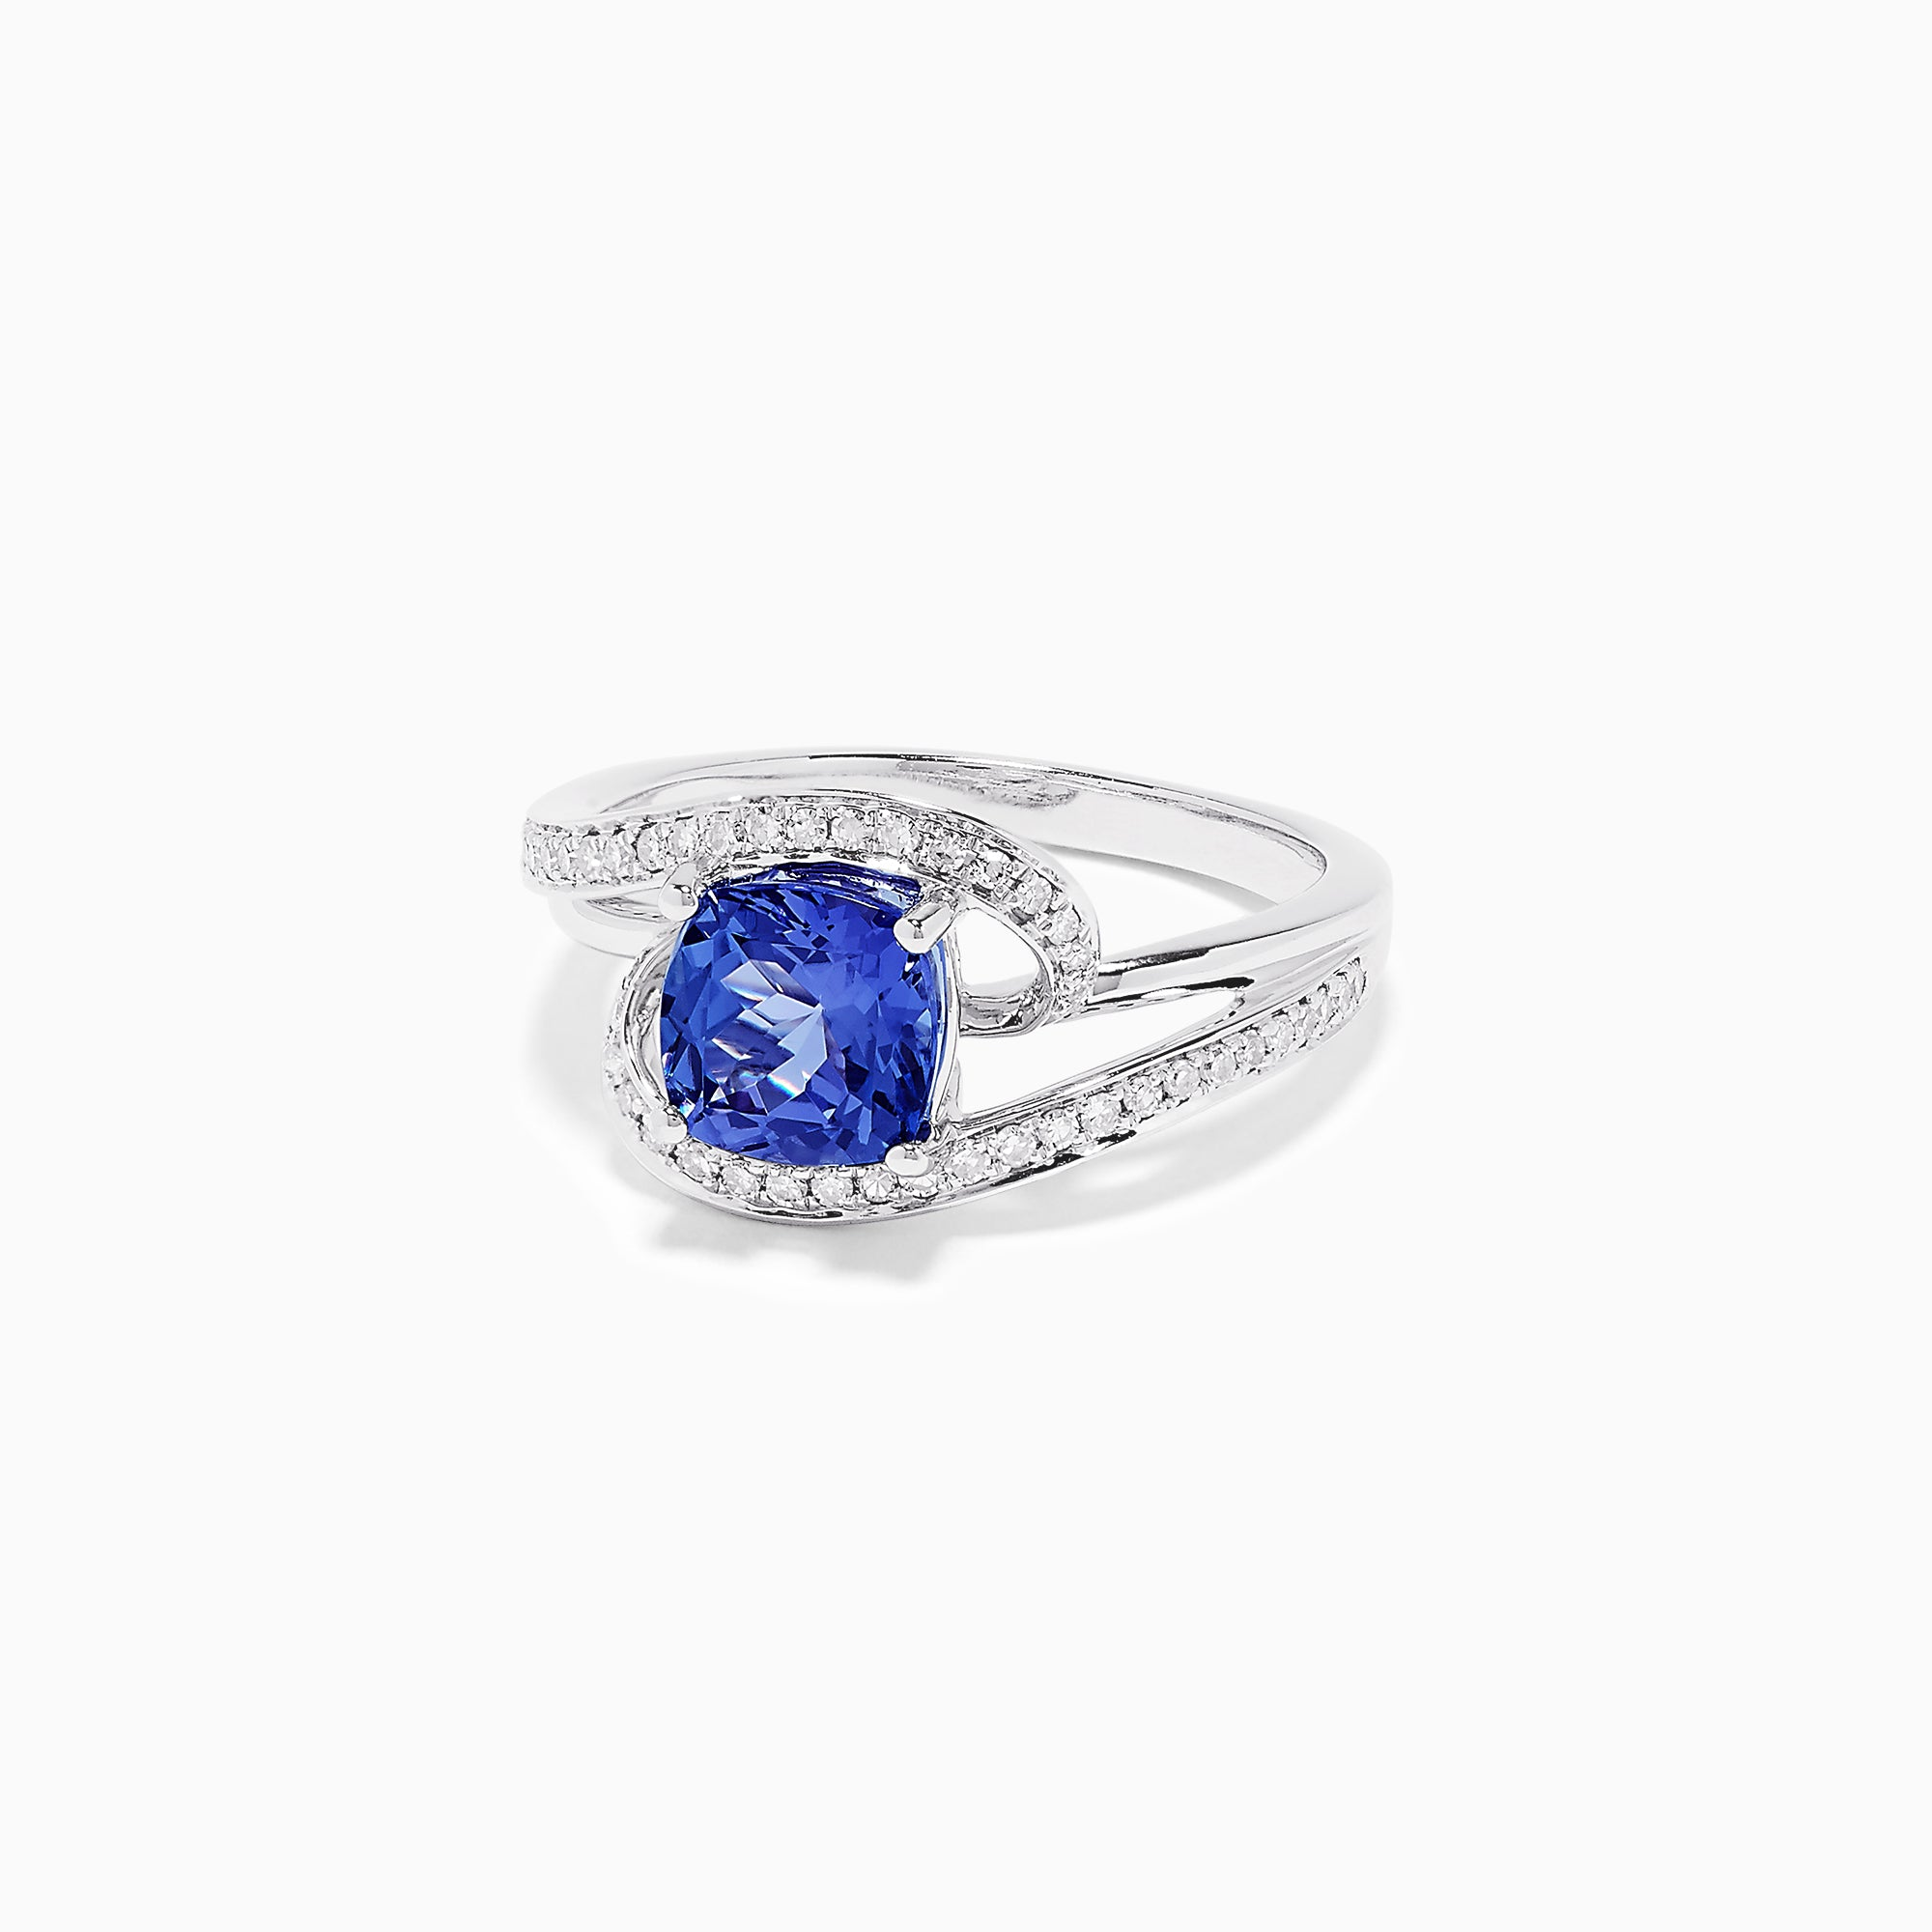 Effy 14K White Gold Tanzanite and Diamond Ring, 1.89 TCW